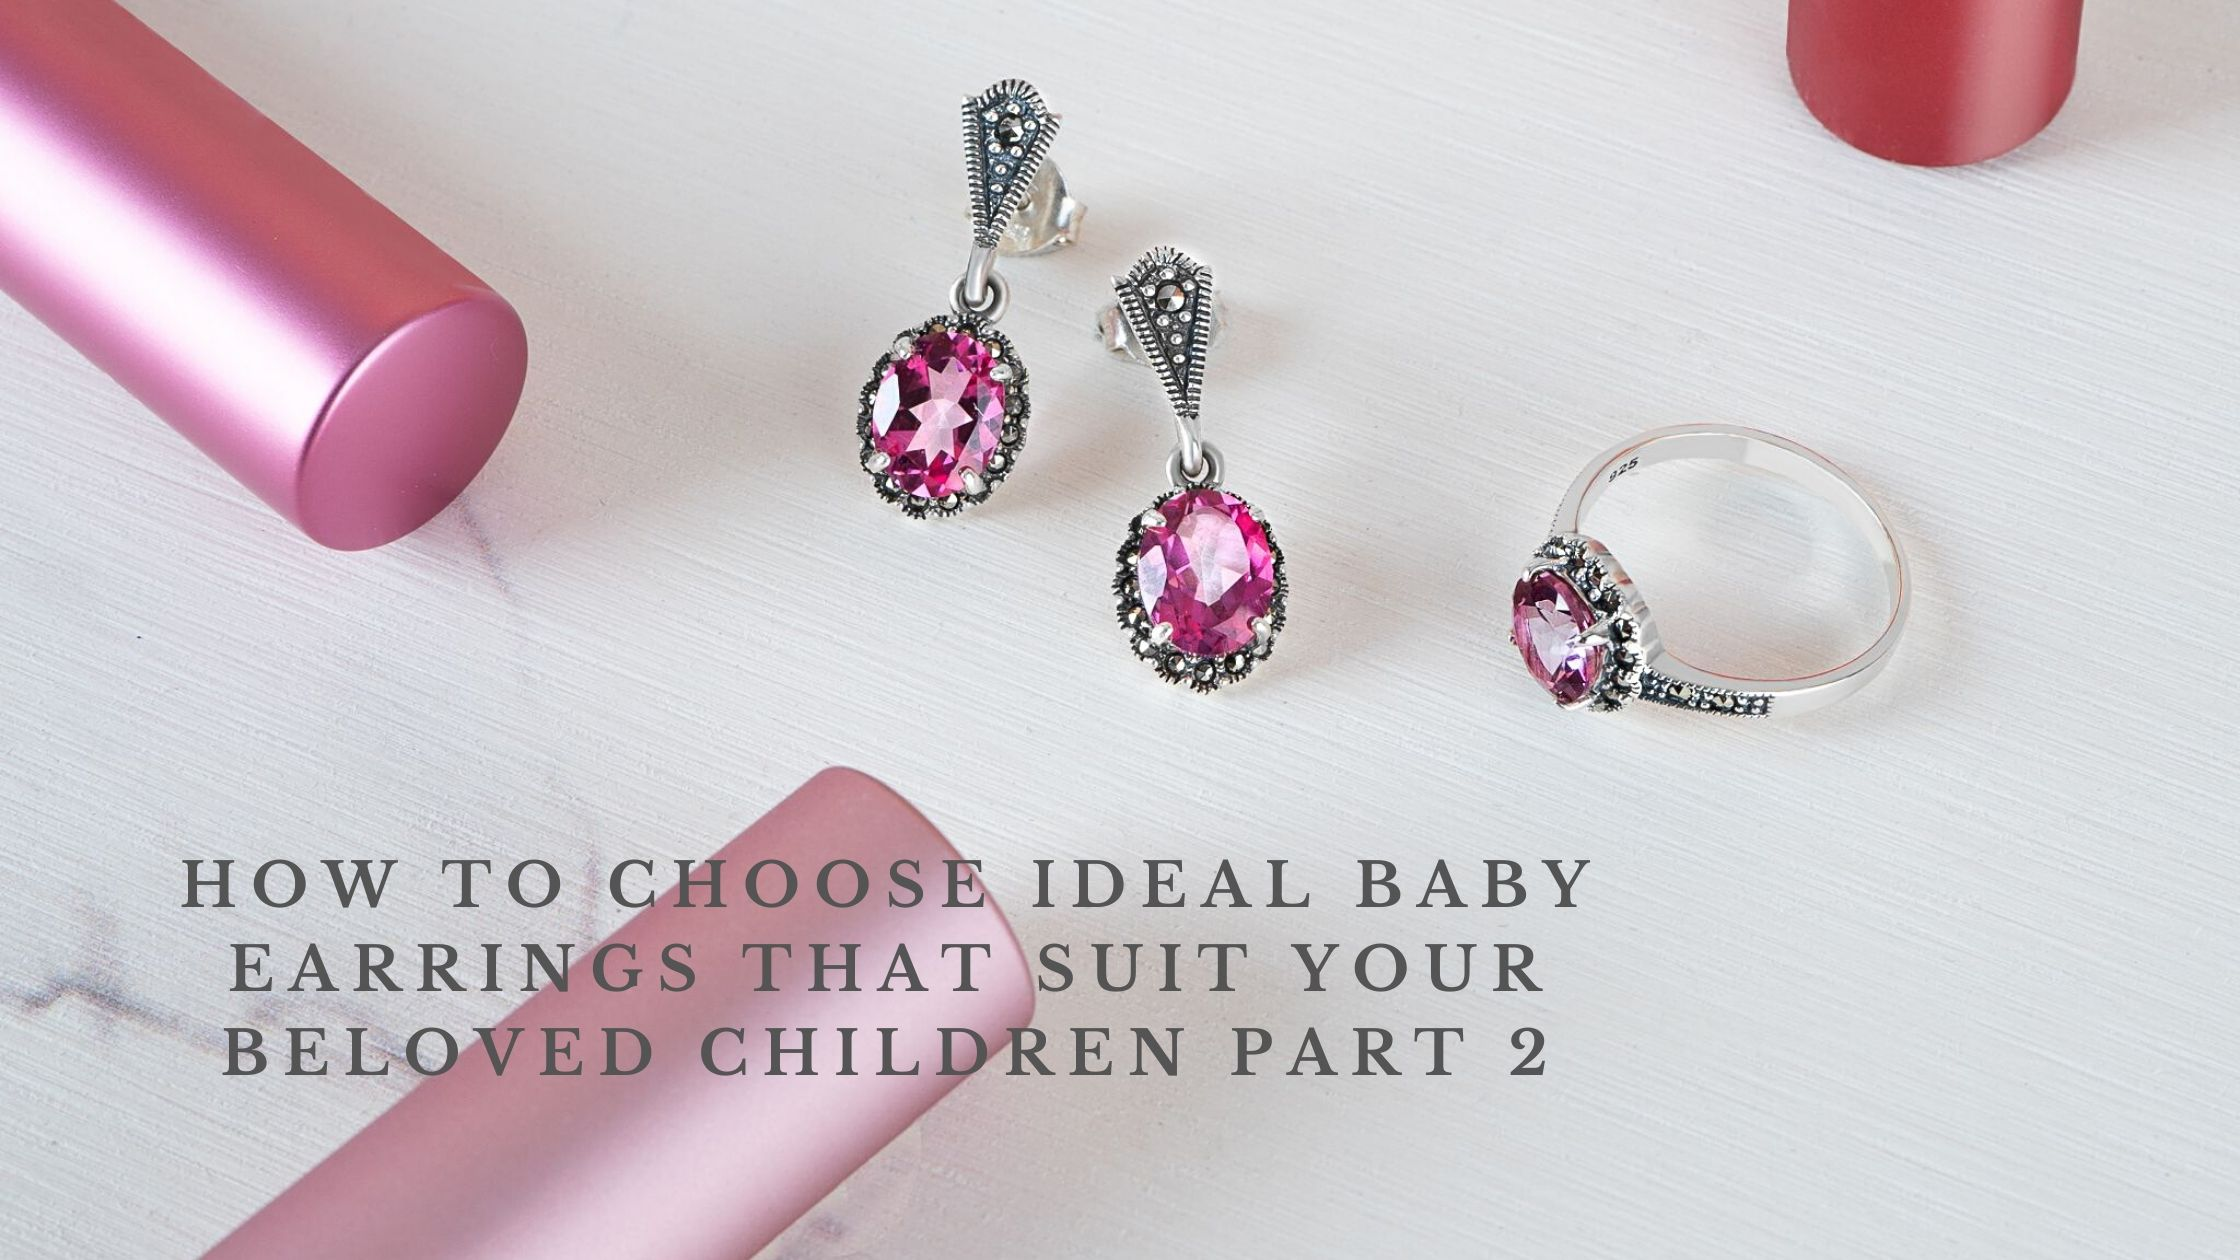 HOW TO CHOOSE IDEAL BABY EARRINGS THAT SUIT YOUR BELOVED CHILDREN PART 2